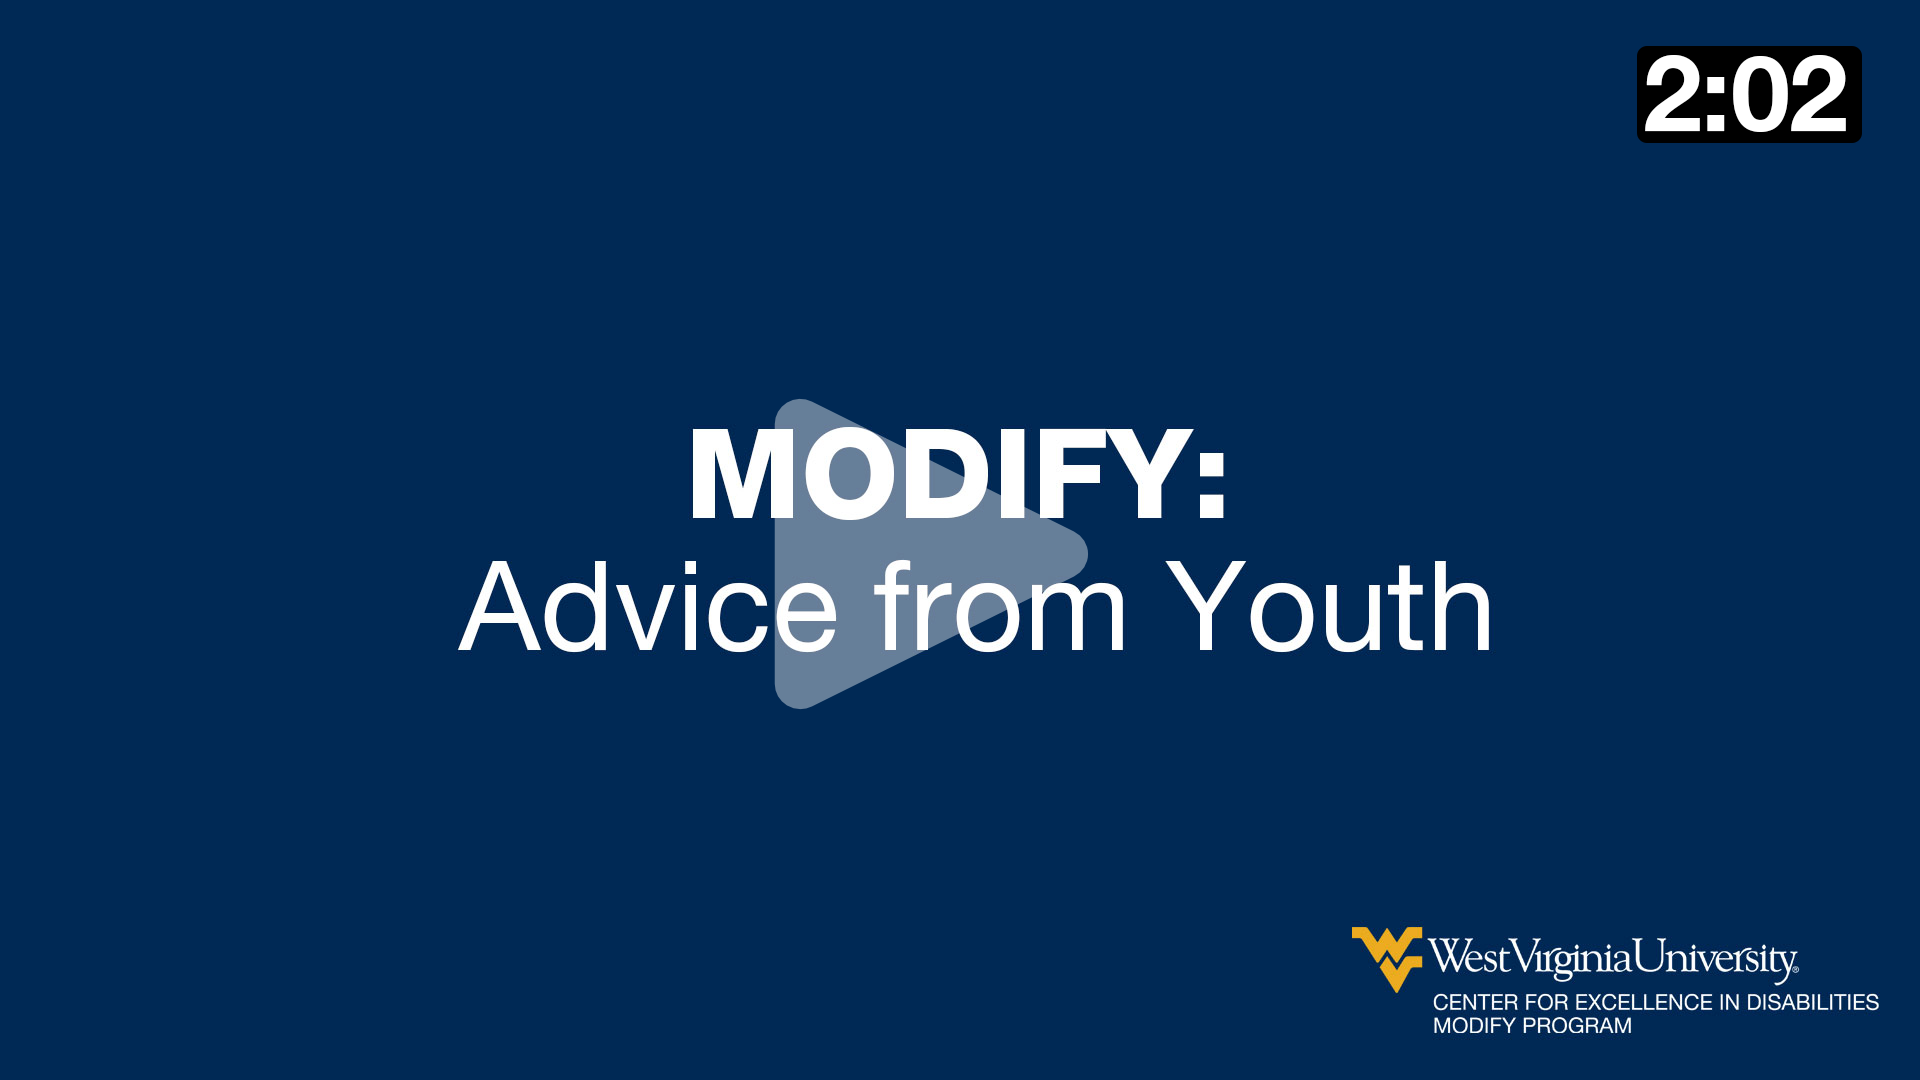 MODIFY: Advice from Youth